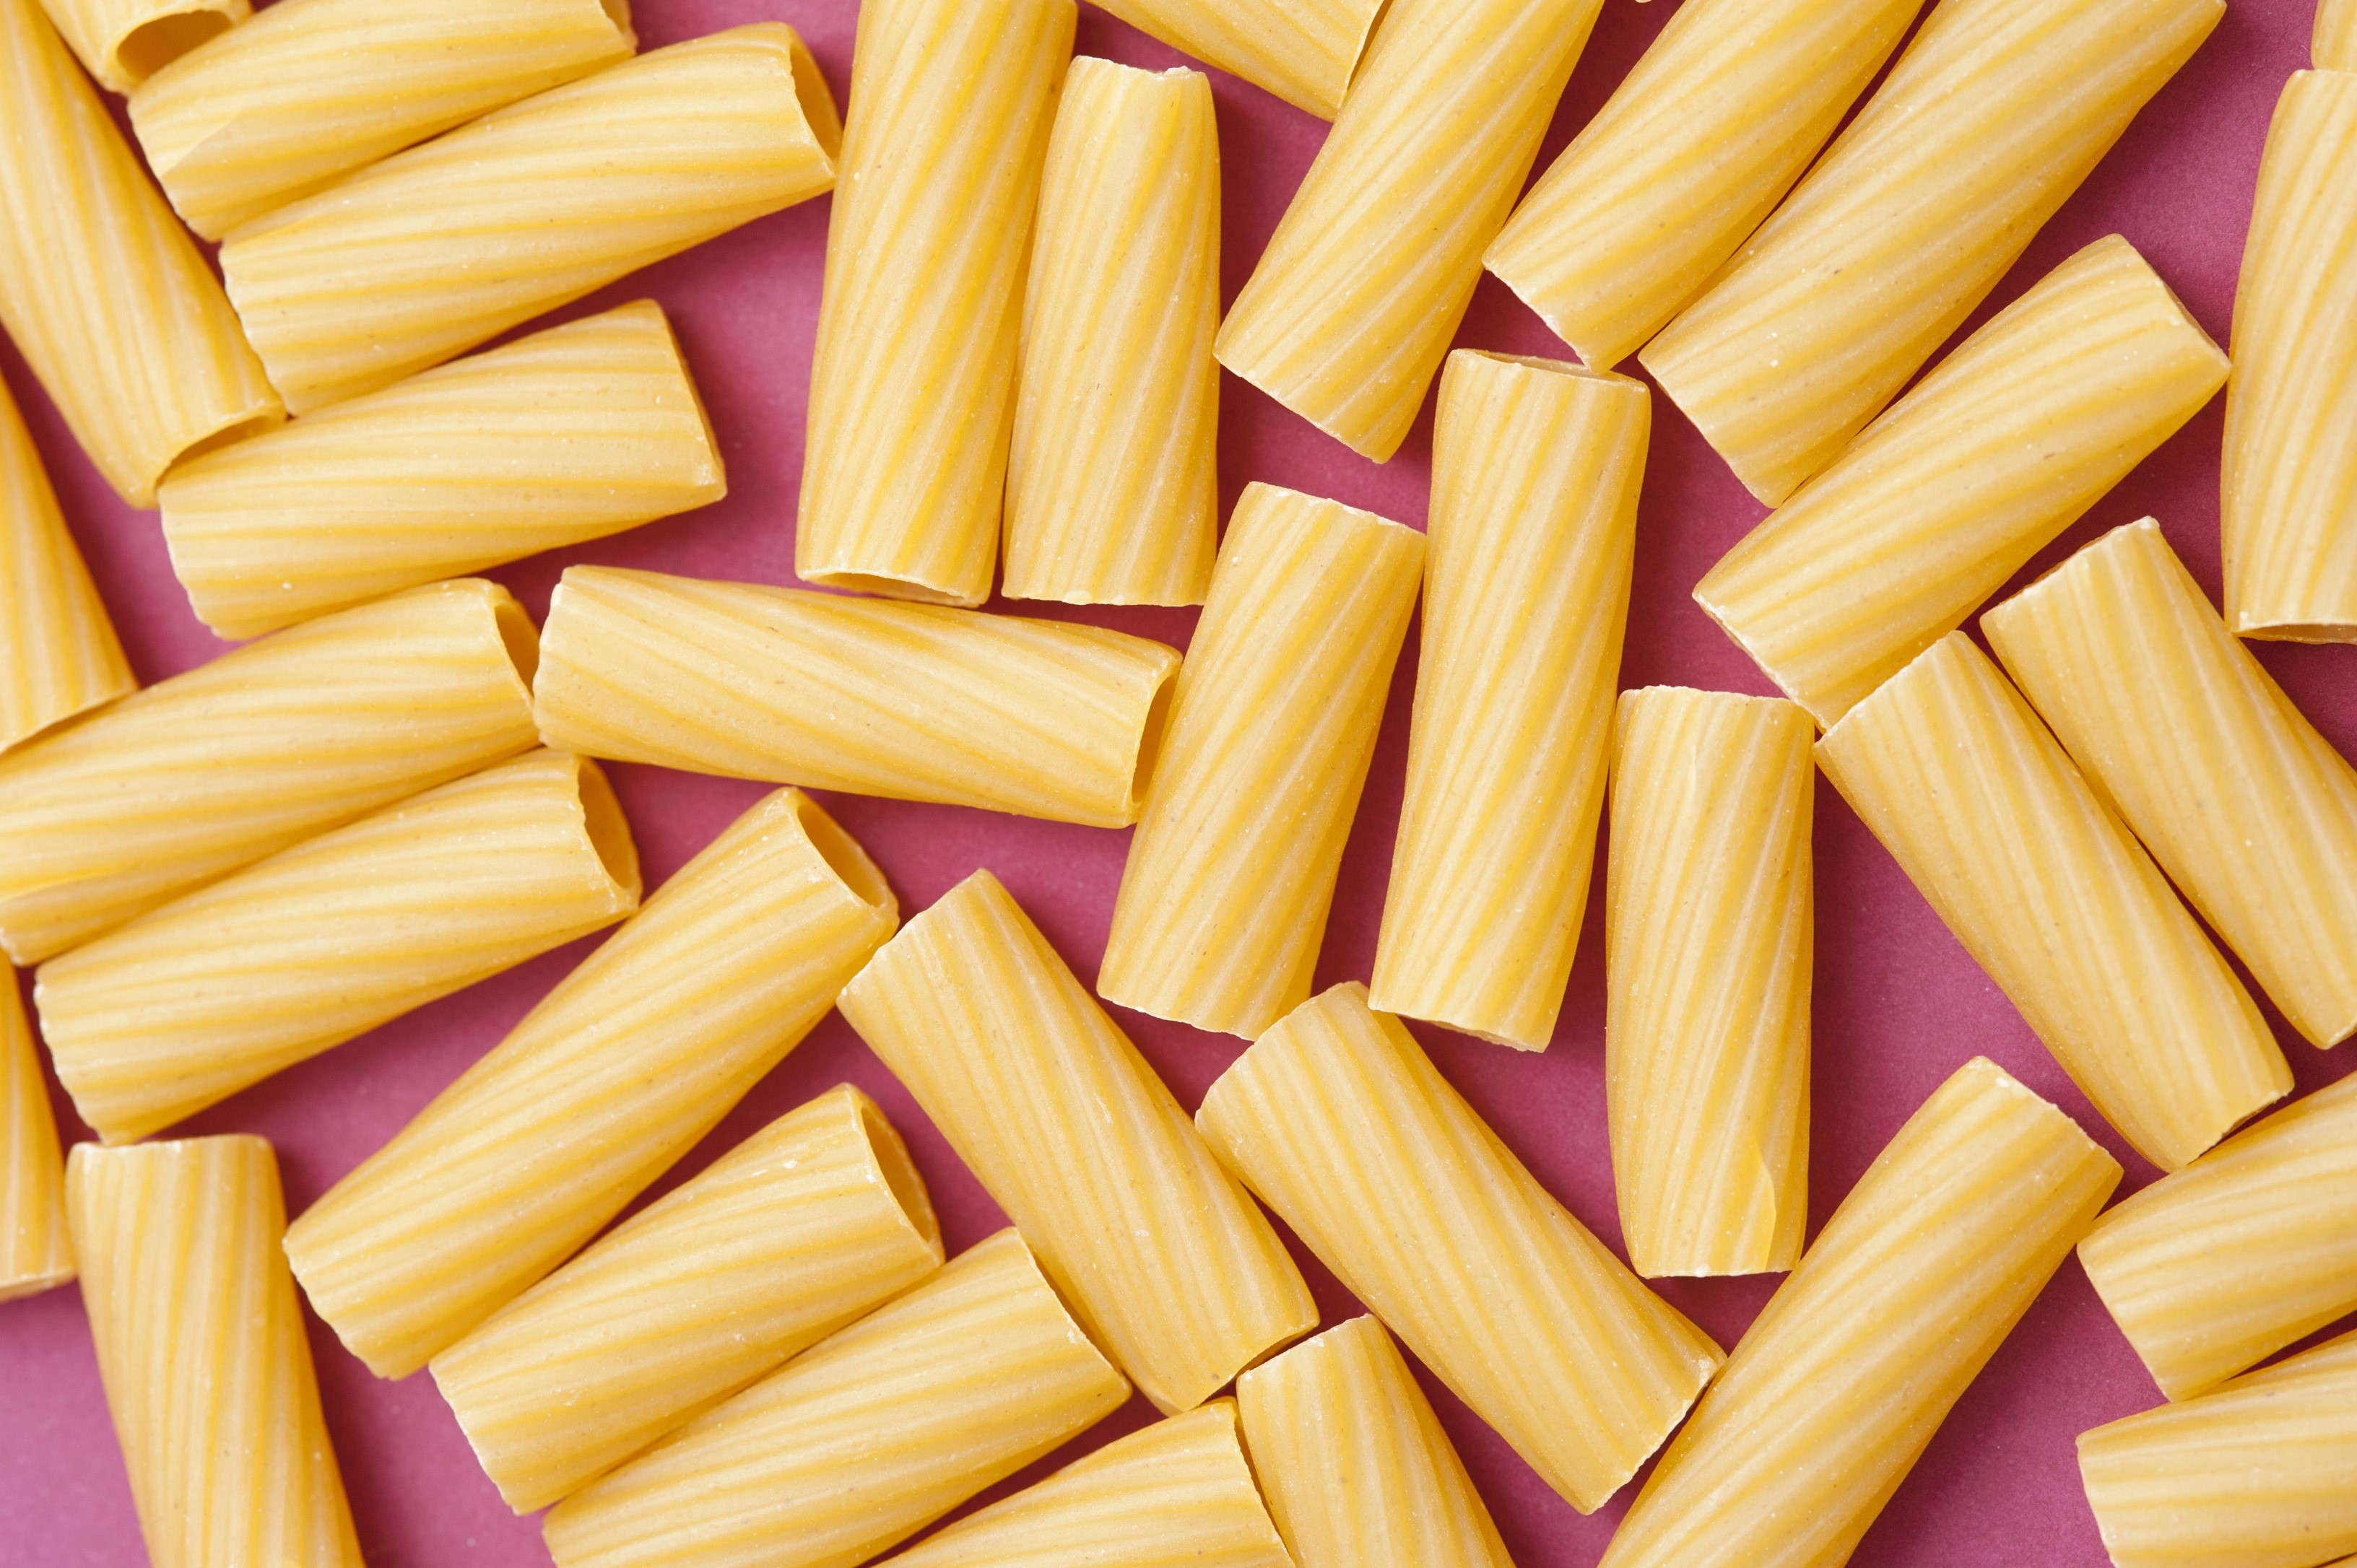 Overhead view of hollow dried pasta tubes made from durum wheat dough for use as an ingredient in Italian and Mediterranean cuisine